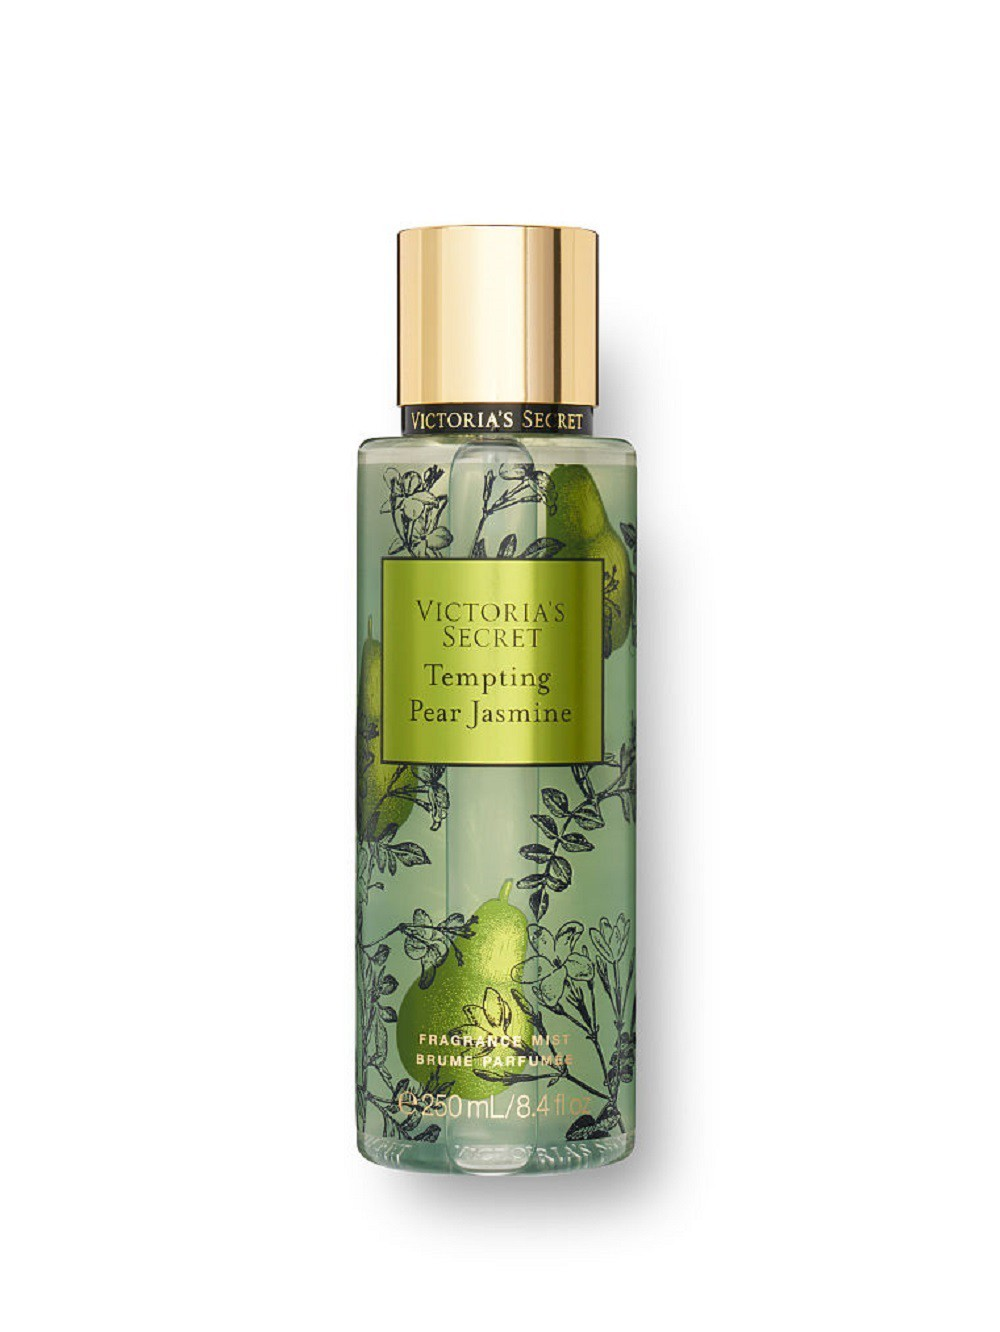 BODY SPLASH TEMPTING PEAR JASMINE VICTORIA'S SECRET